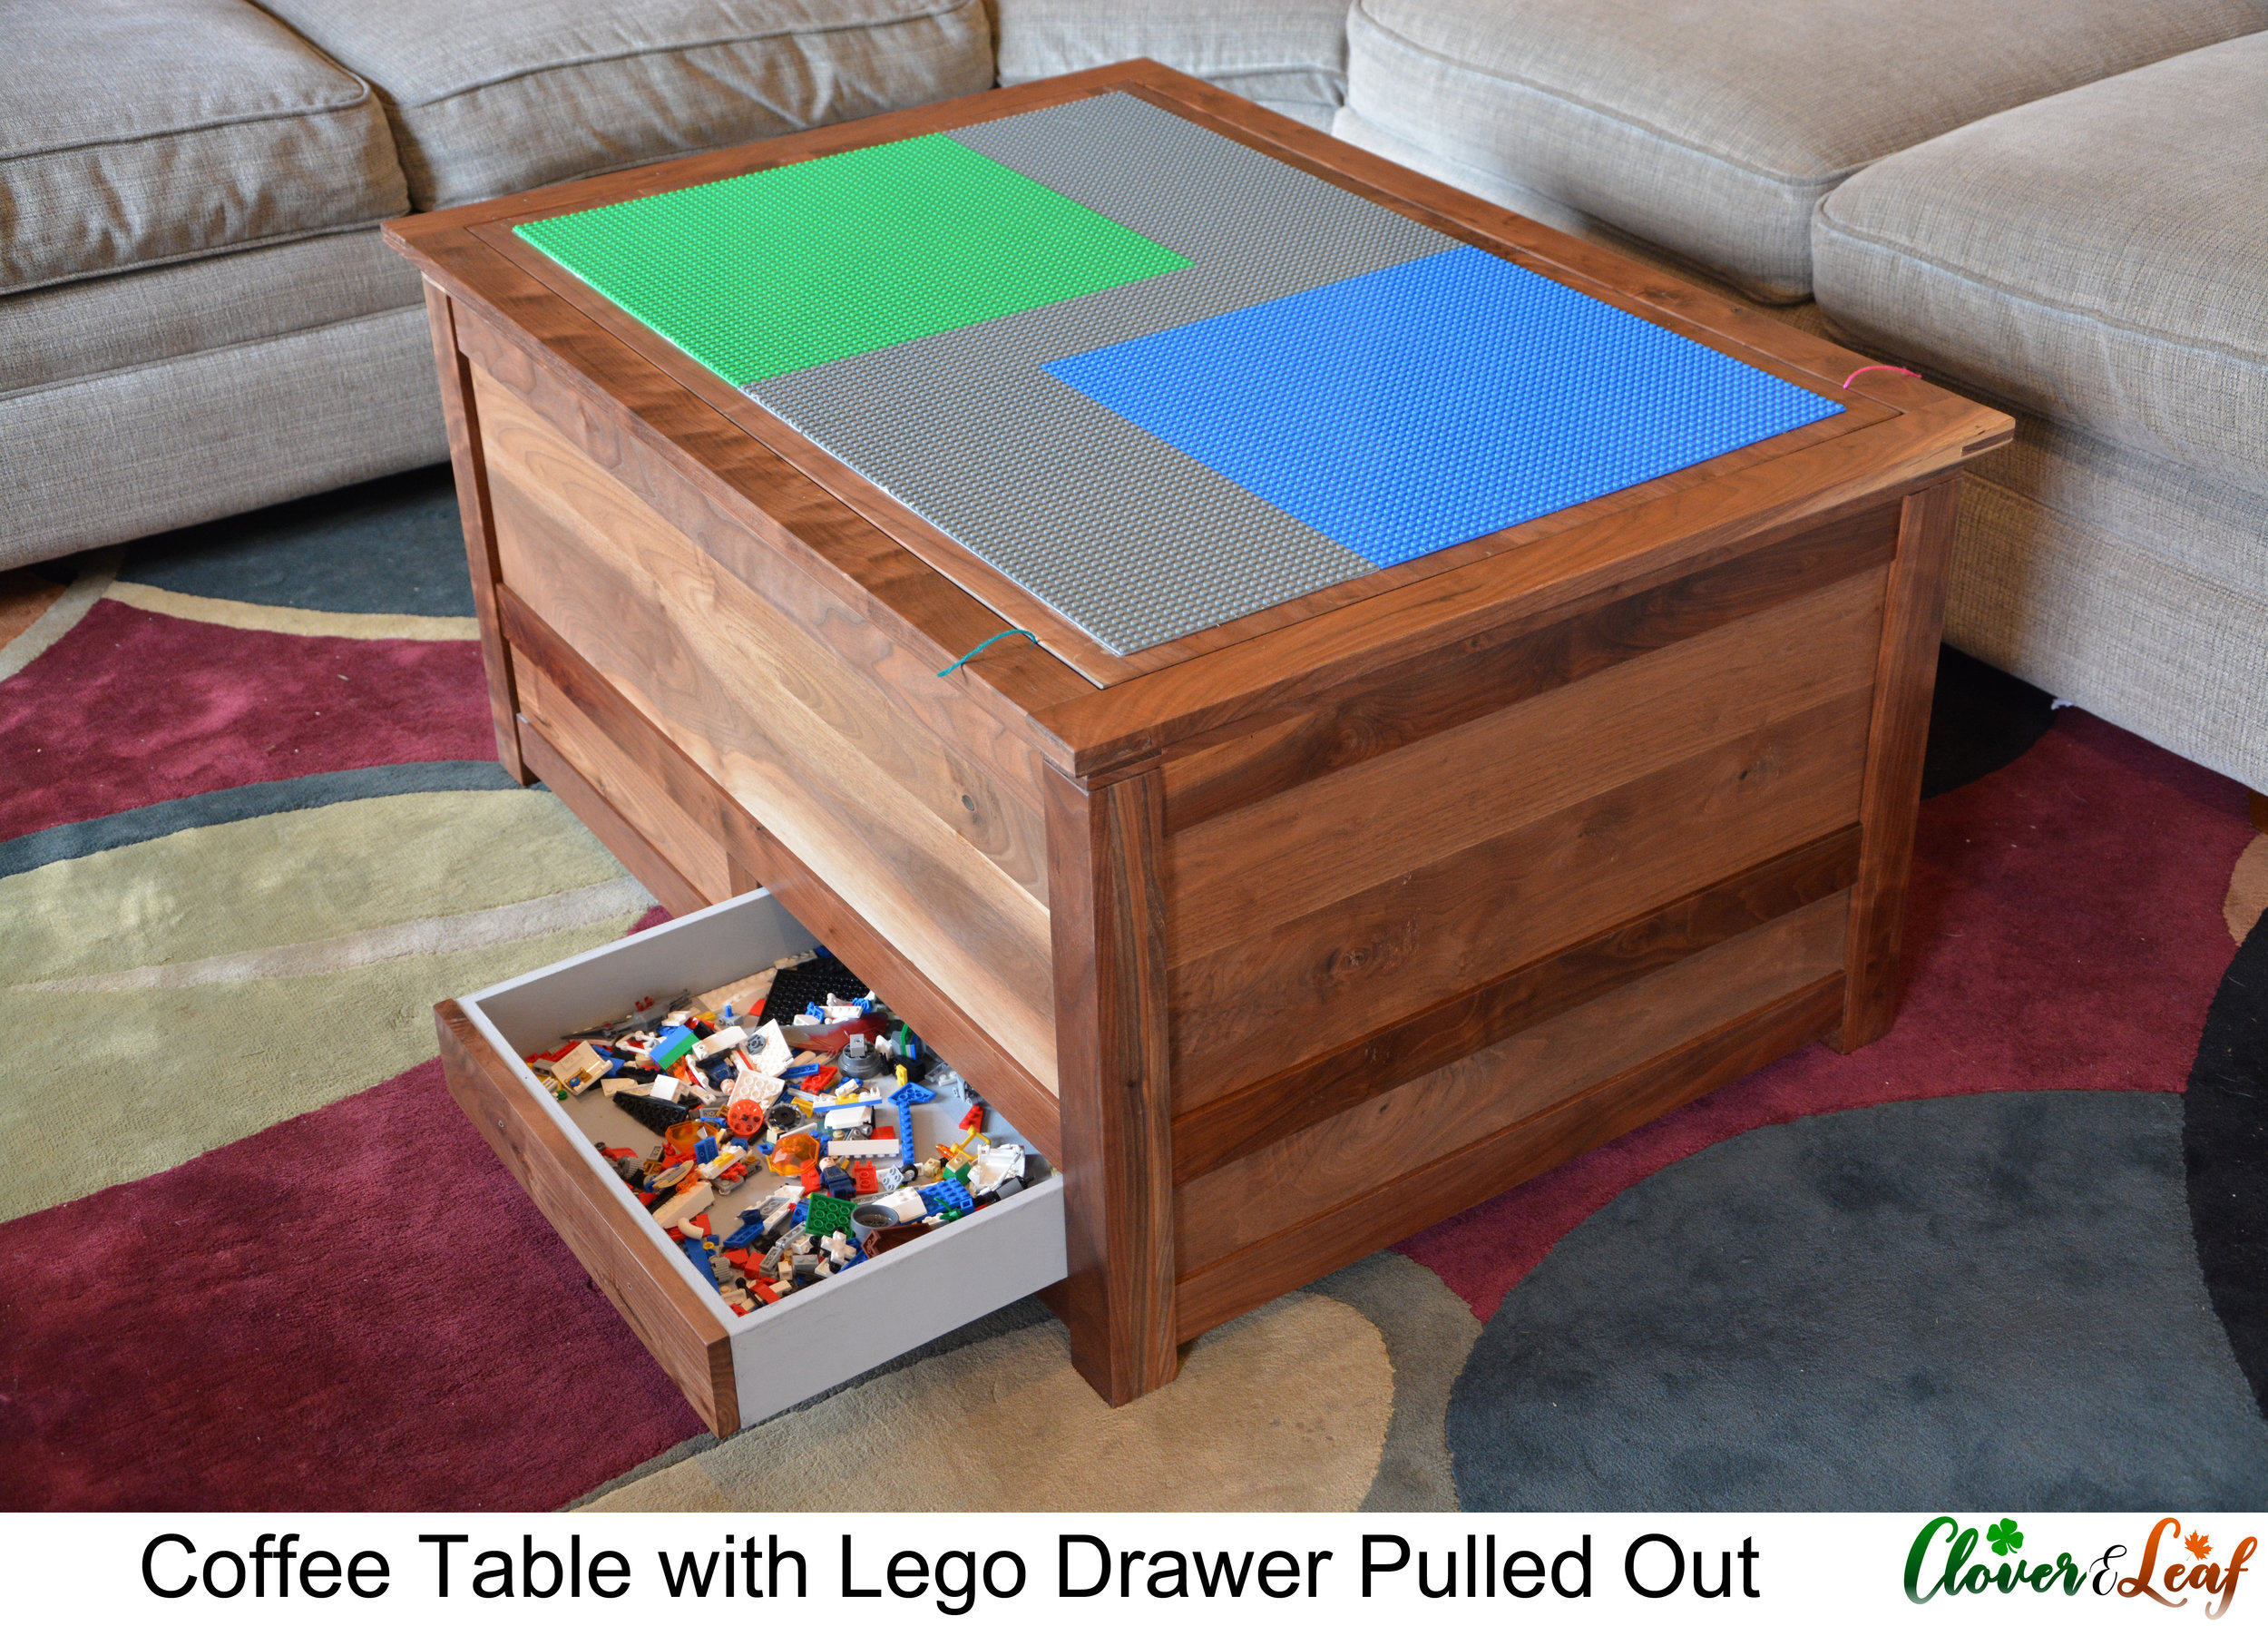 Coffee Table with Lego Drawer Pulled Out.jpg